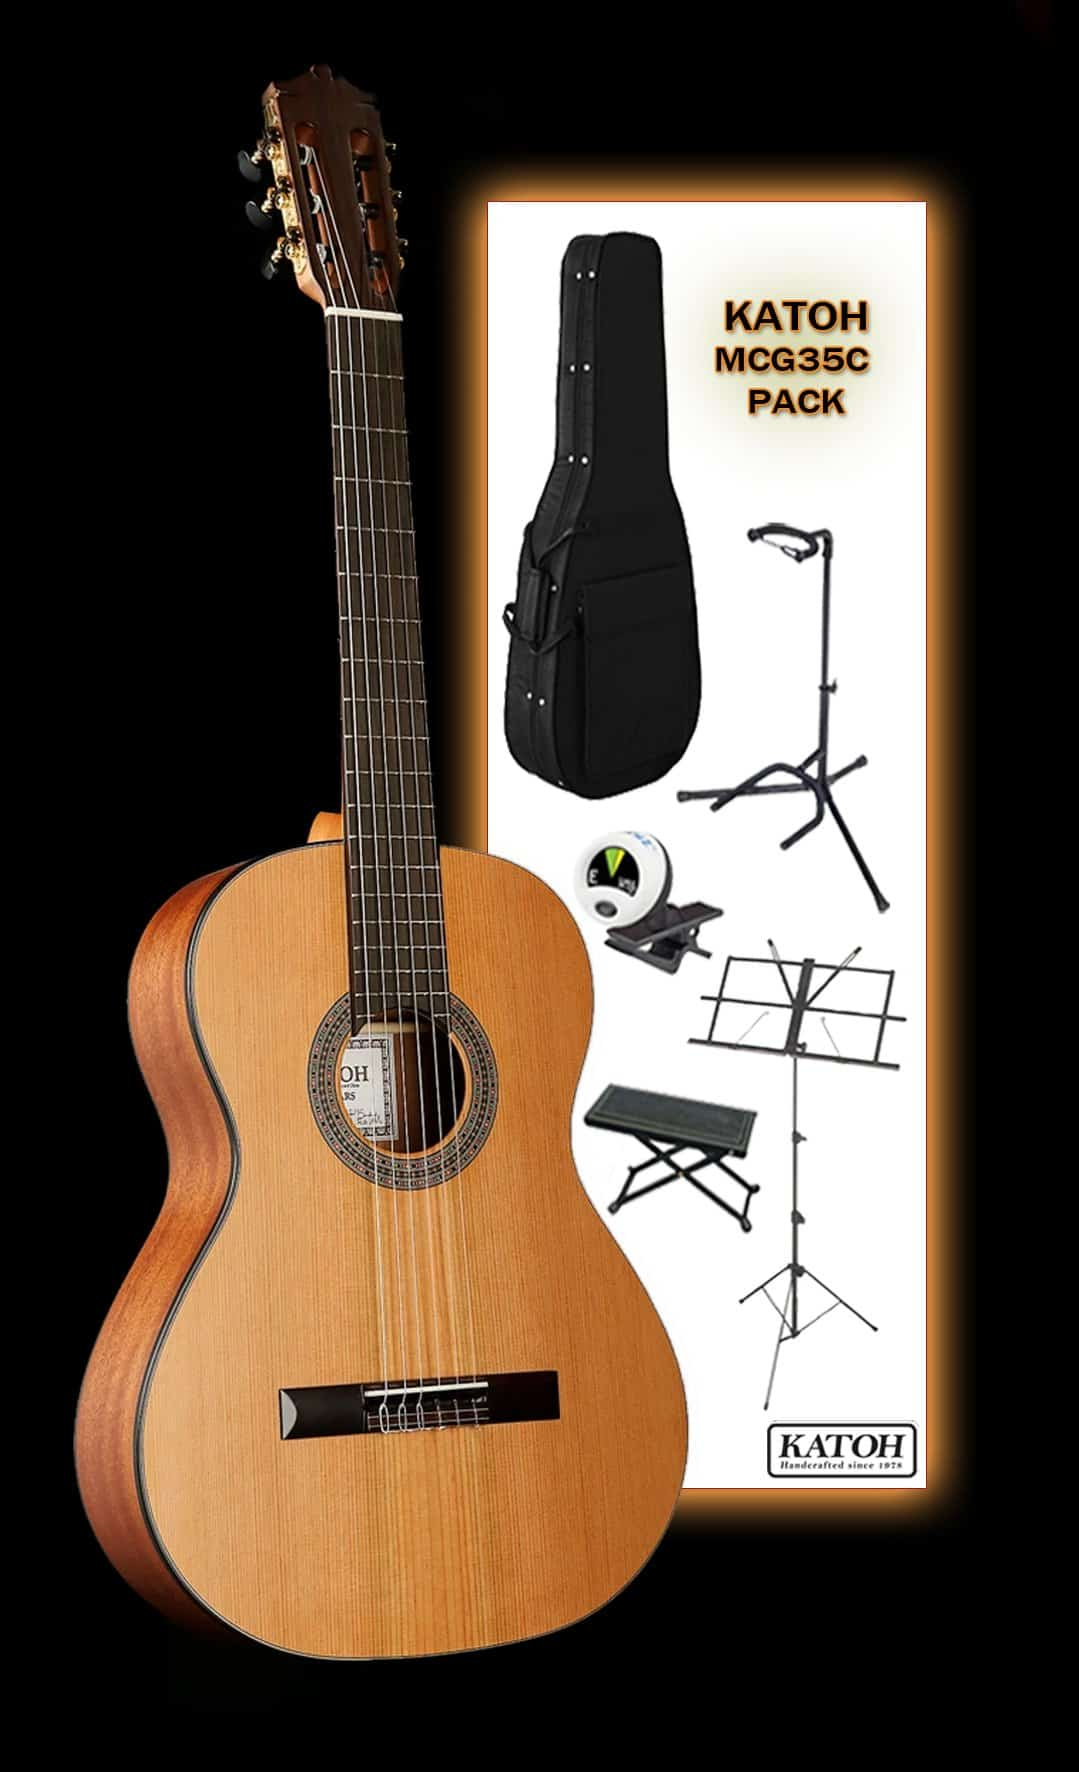 Katoh MCG35C classical guitar pack